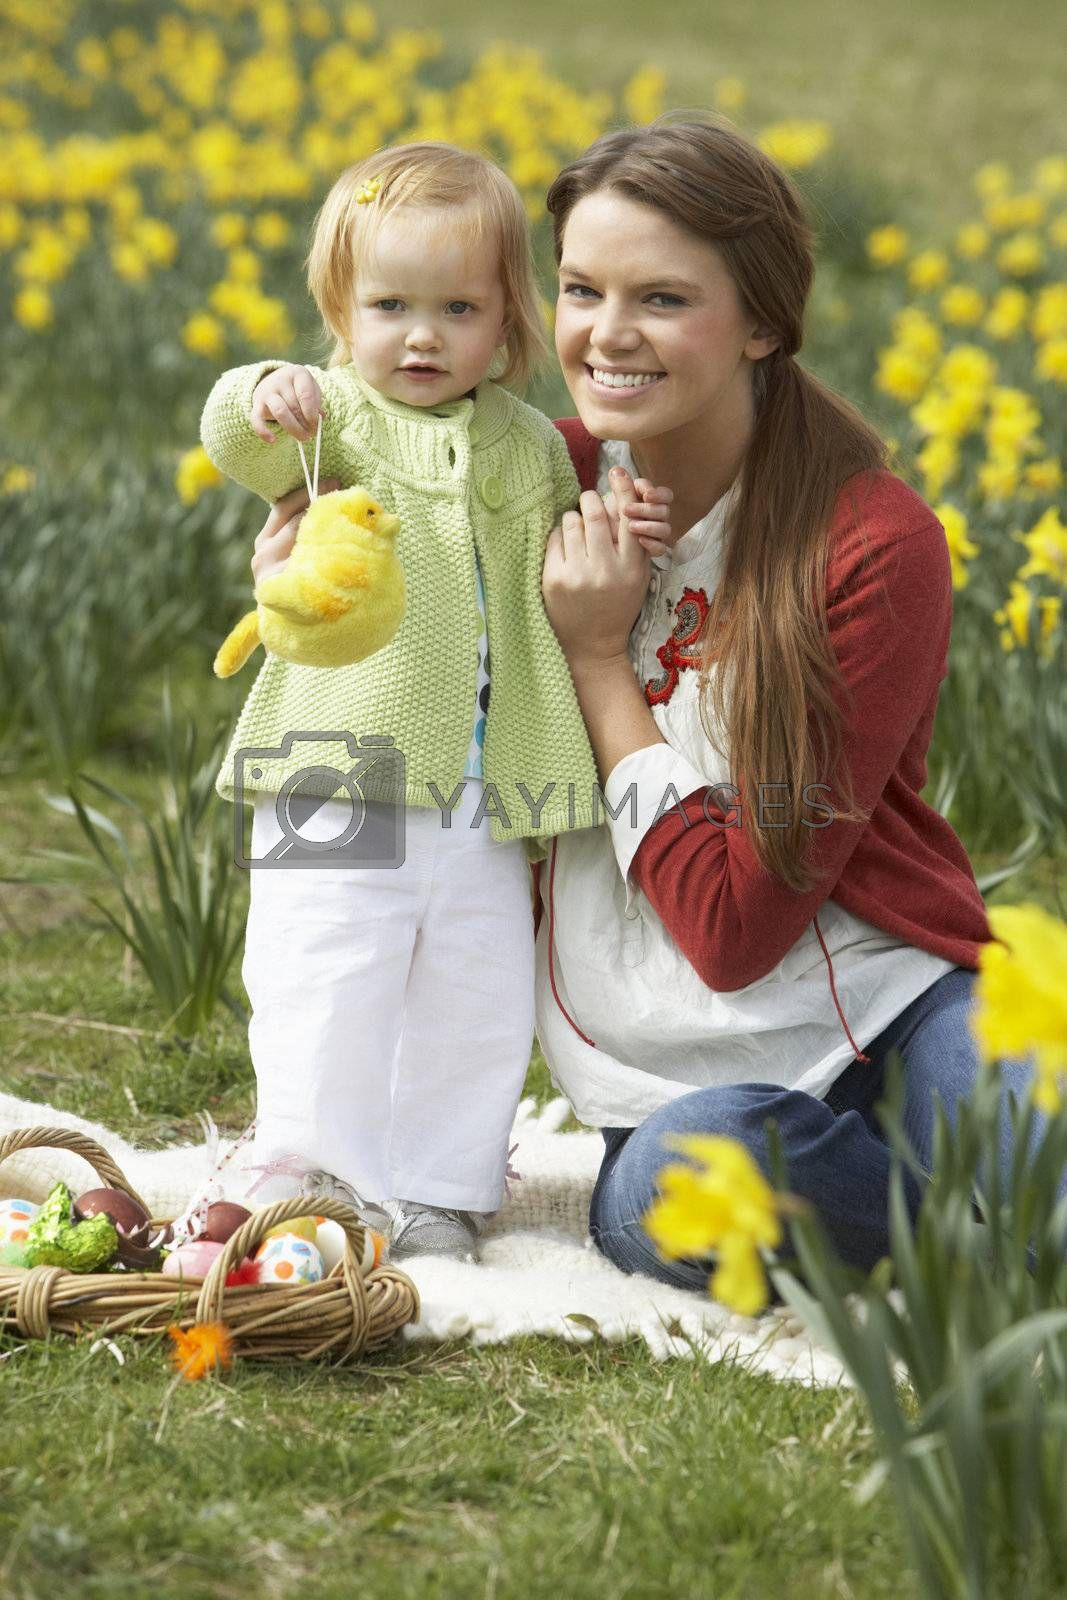 Mother And Daughter In Daffodil Field With Decorated Easter Eggs